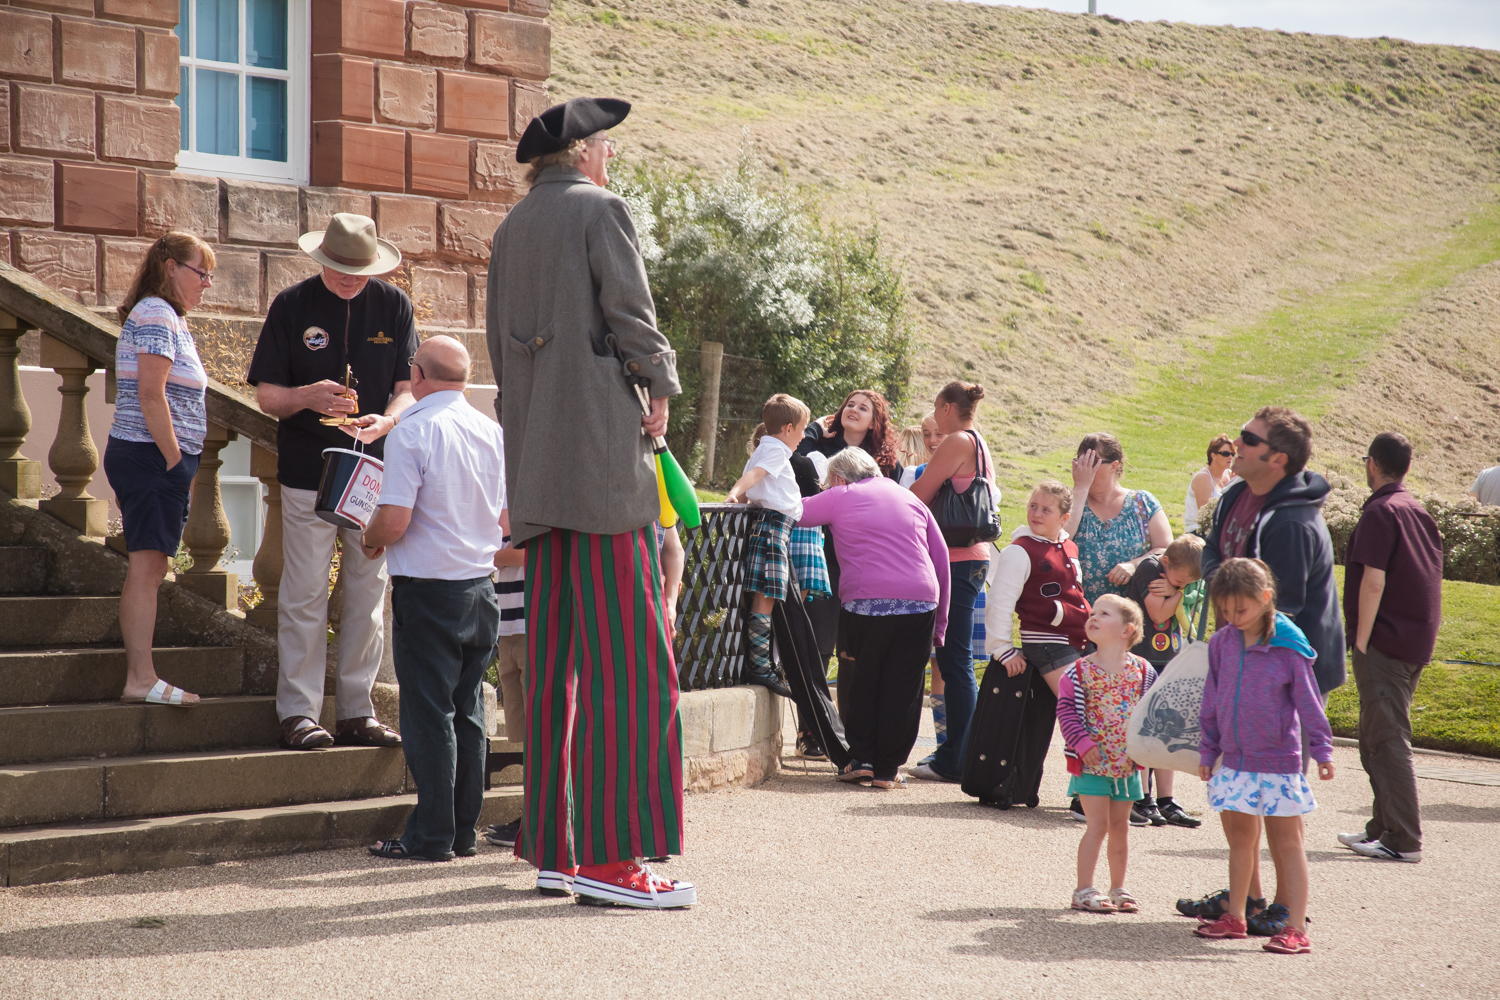 PICTORIAL_BERWICK_eyemouth-gunsgreen-extravaganza-photography-entertainment-party-event-photographer-harbour-gary-dunn-dancers-stilts-performances-speeches-day-out-summer-4526.jpg